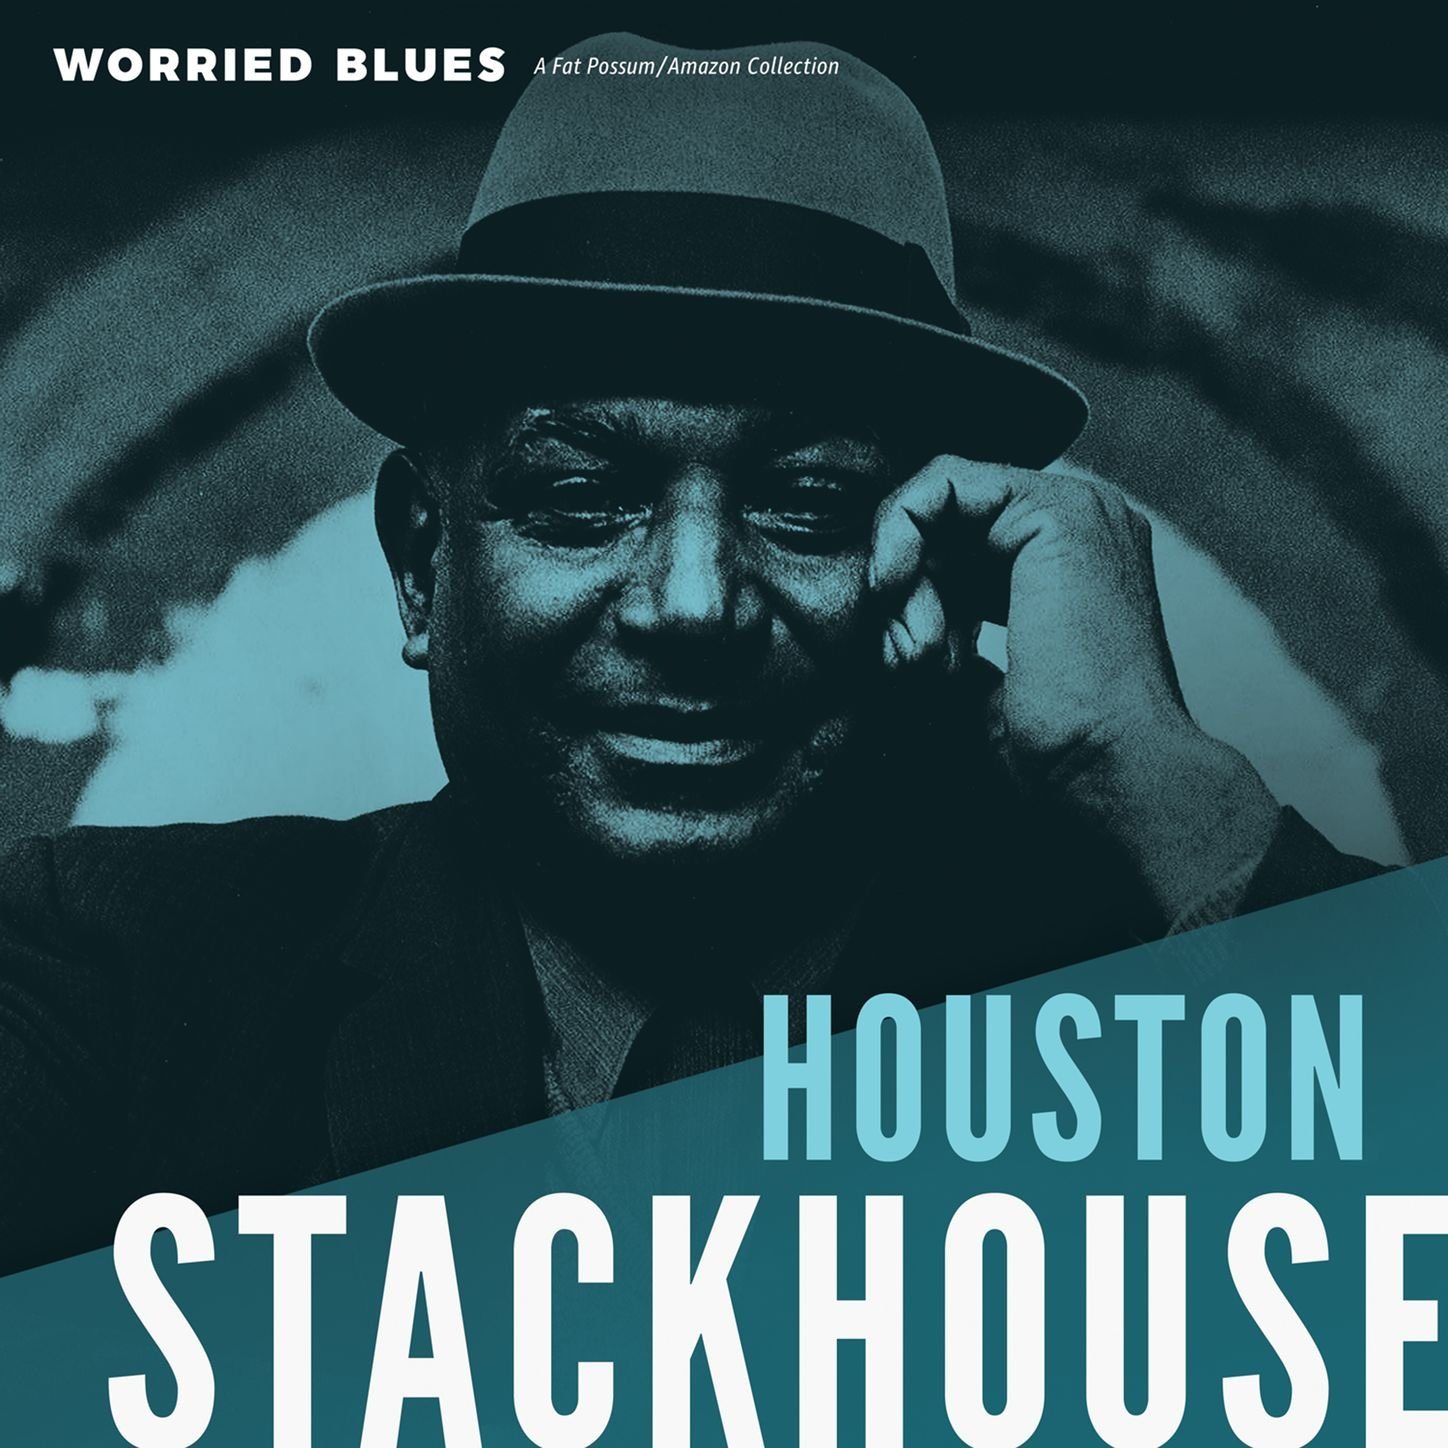 Houston Stackhouse